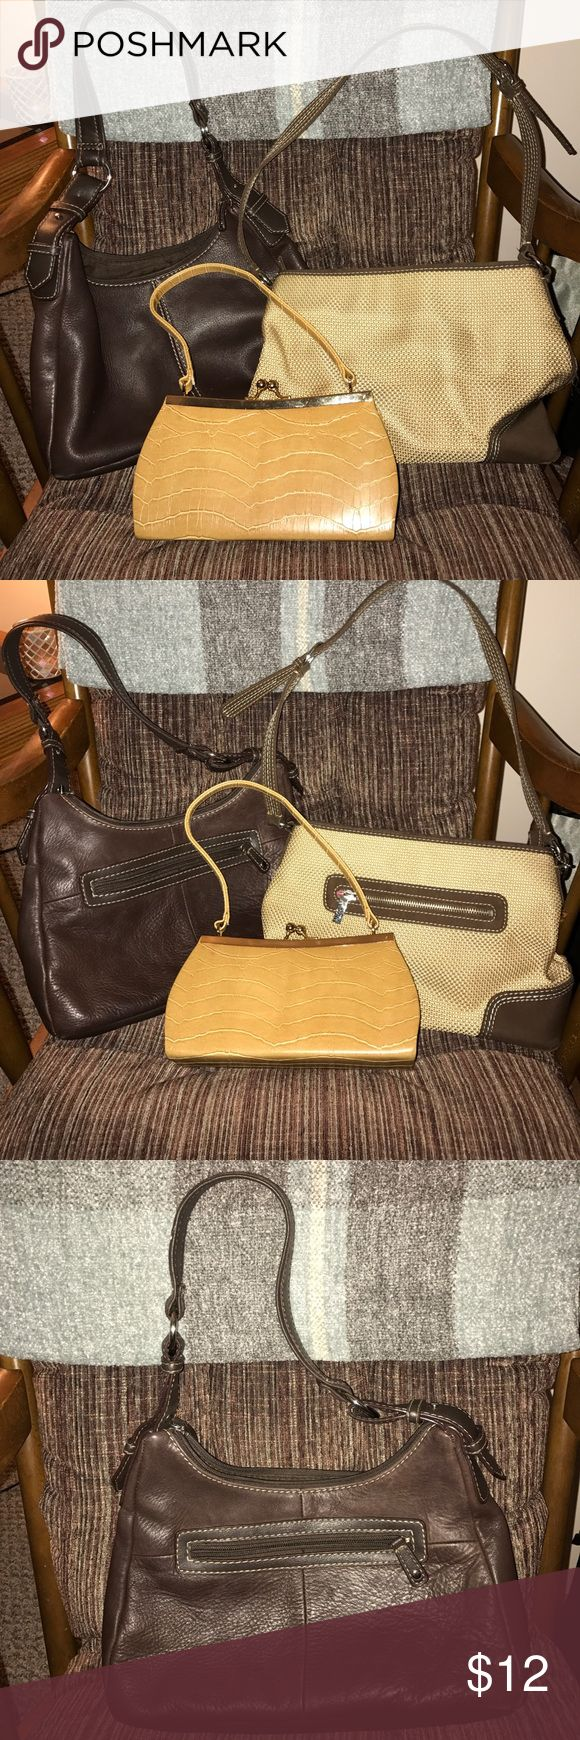 Bundle of used handbags Bundle of 3 used Handbags. One St. Johns Bay dark brown leather with vinyl trim bag, one Sak tan bag, and one small tan clutch. All are used with defects. Please ask questions for details. The Sak Bags